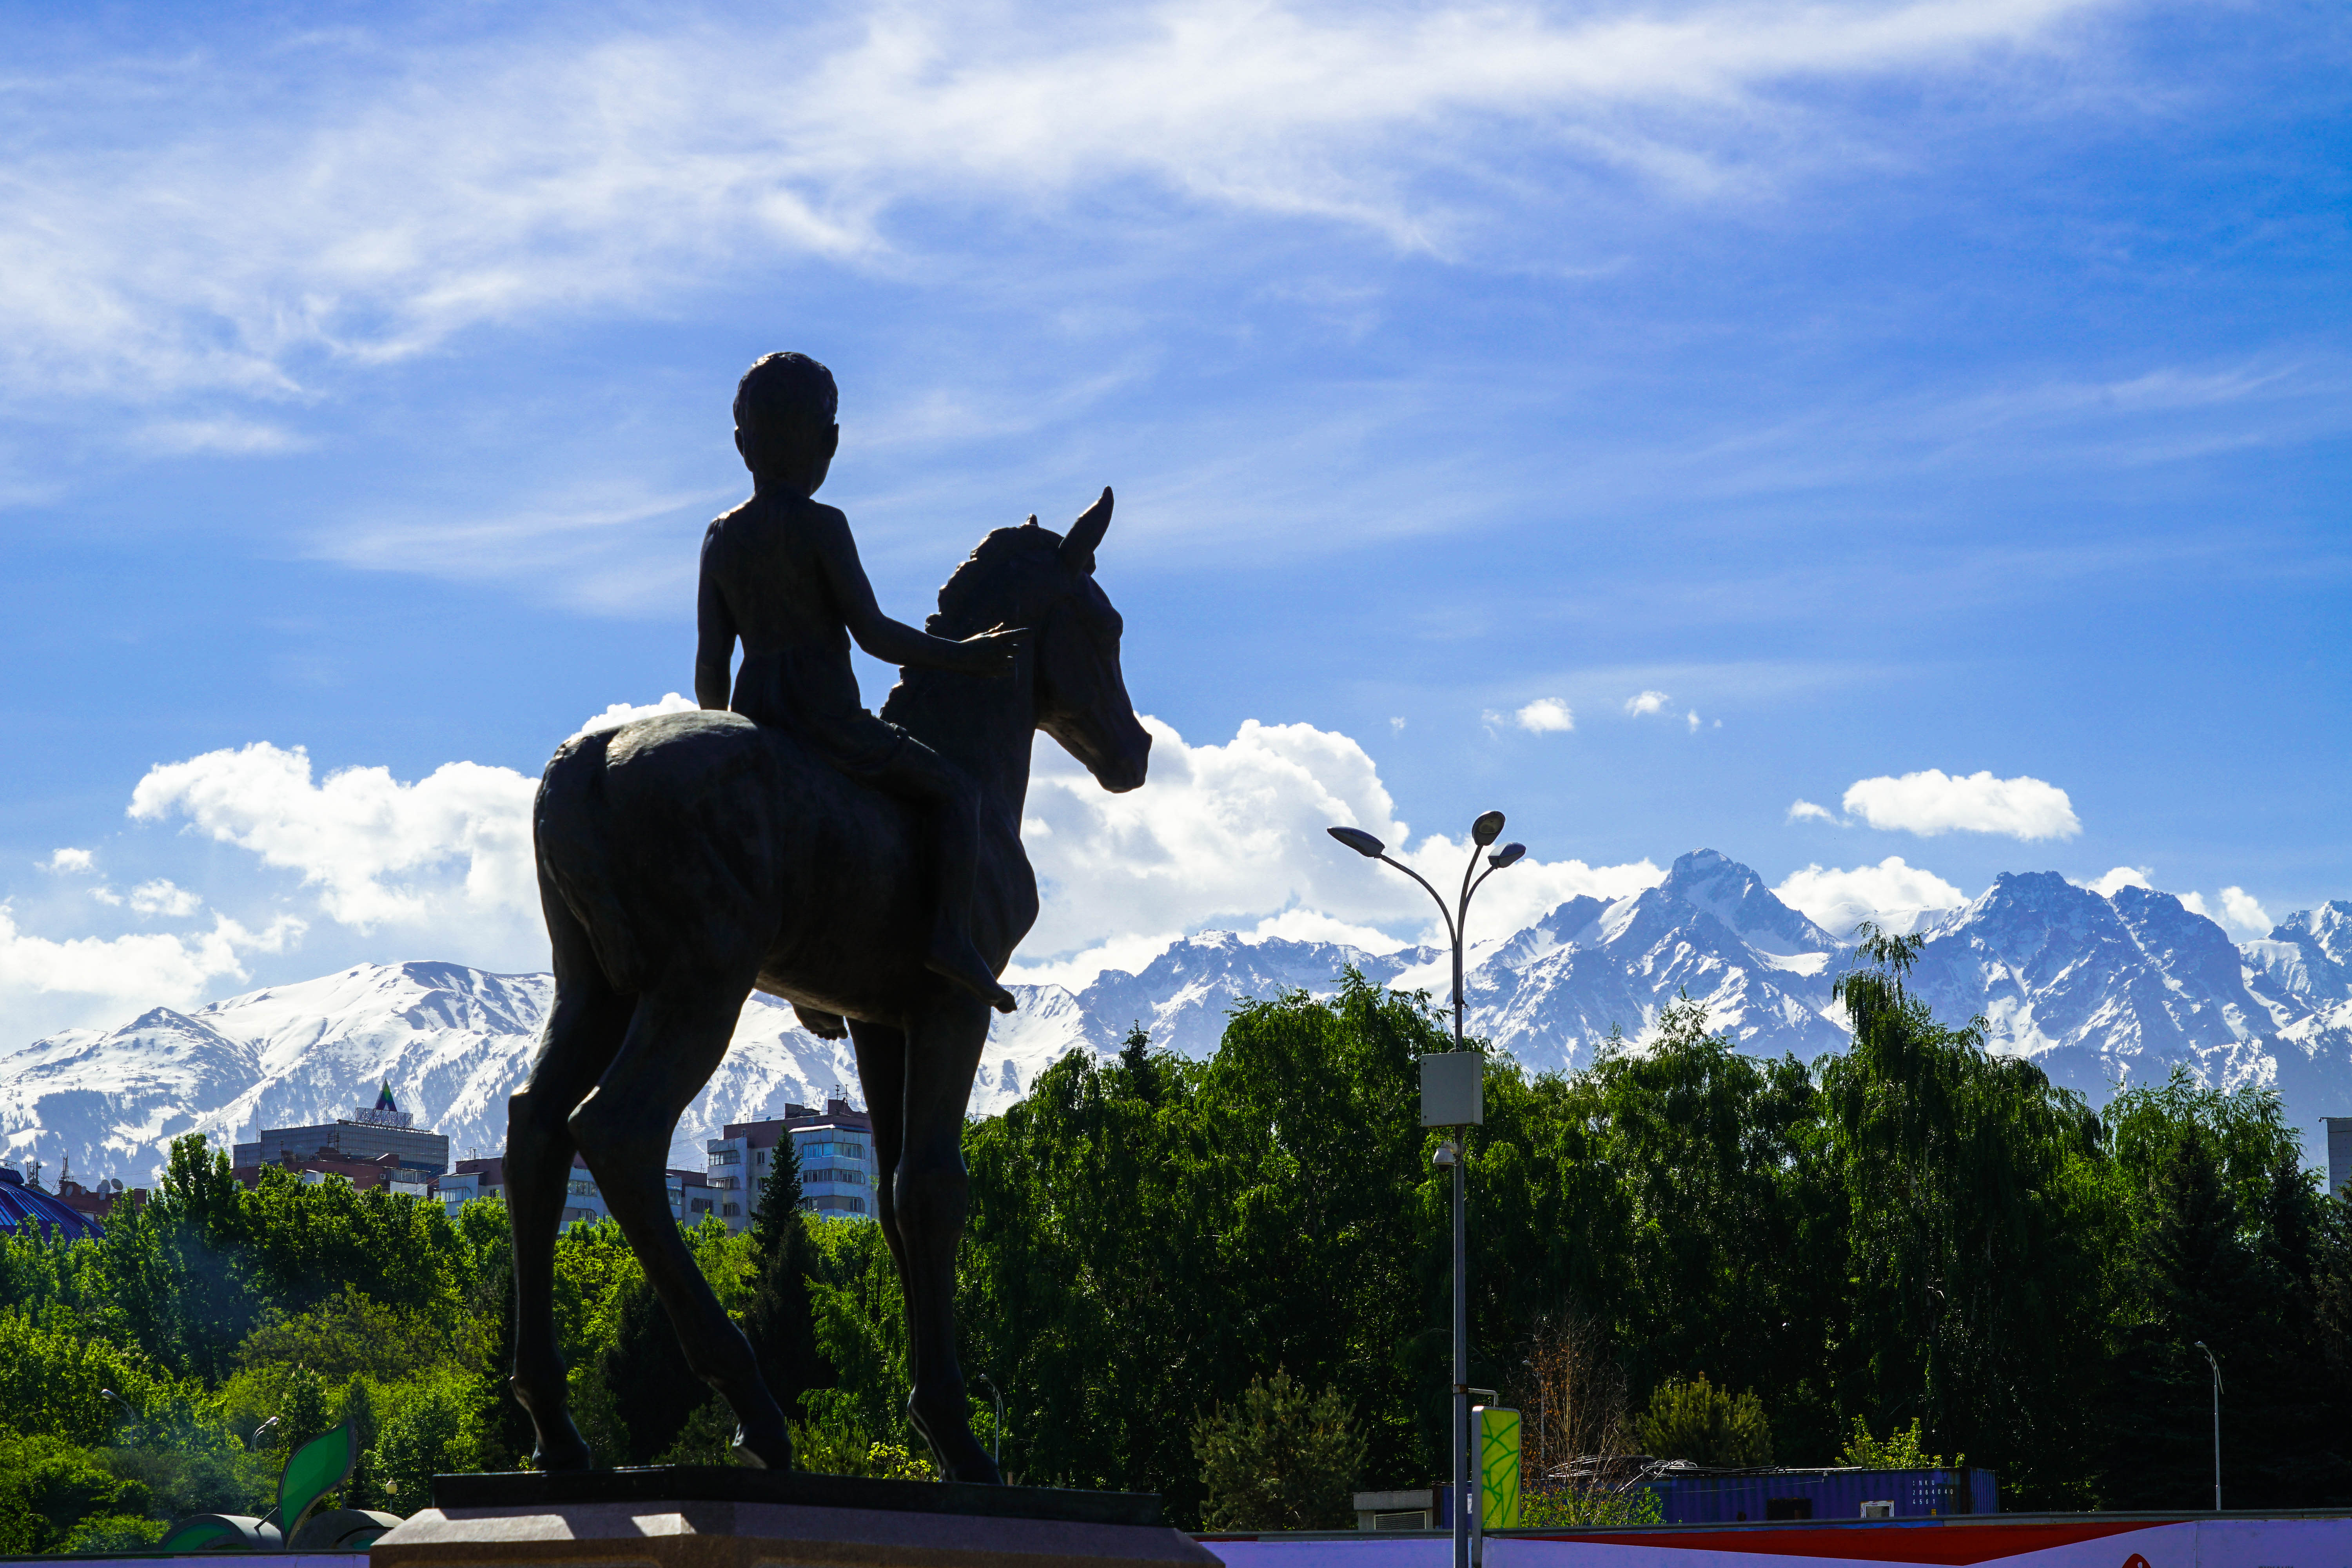 Almaty square horse rider boy with mountain view